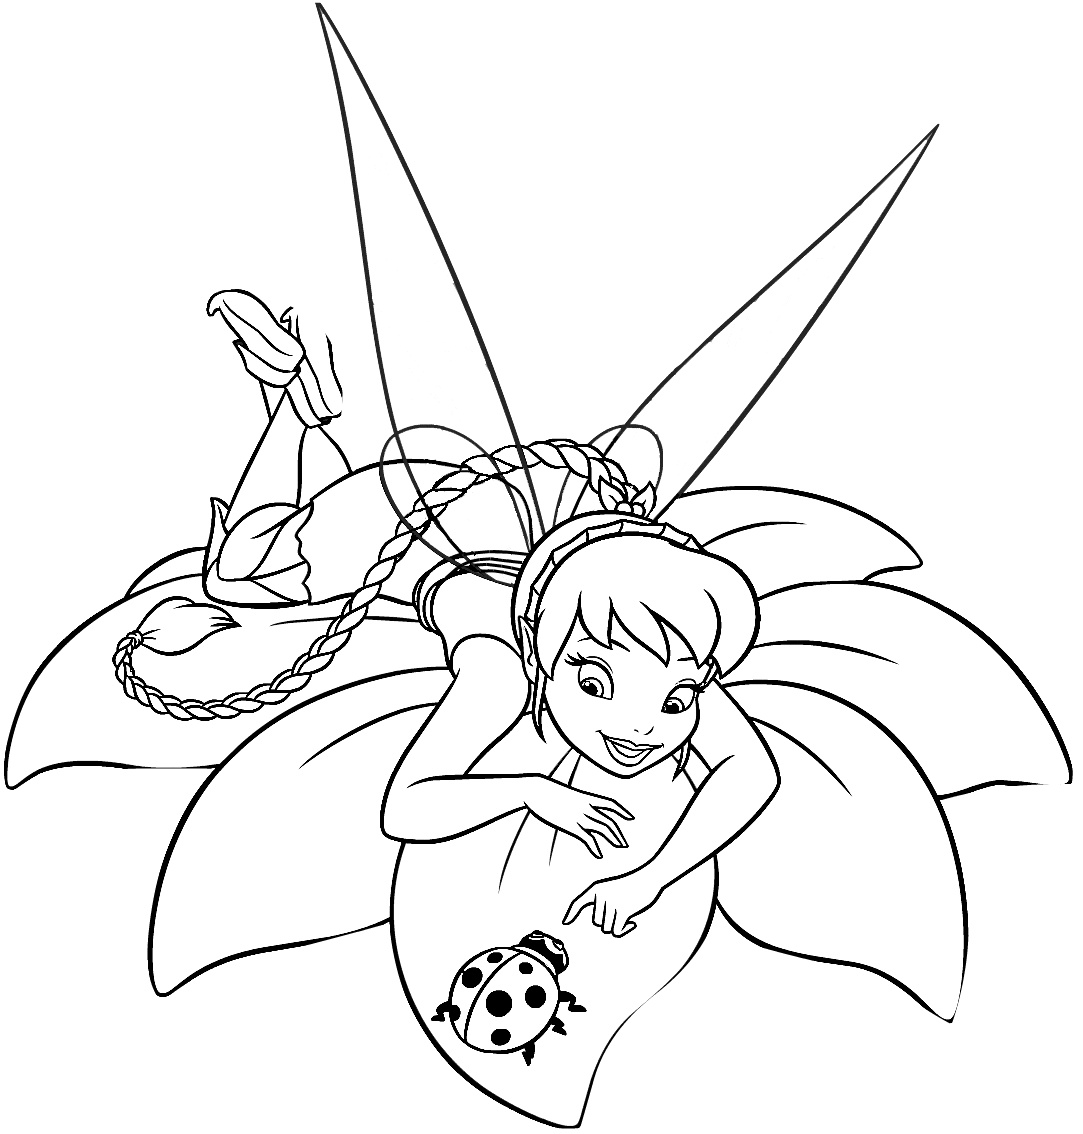 tinkerbell coloring book 30 tinkerbell coloring pages free coloring pages free coloring tinkerbell book